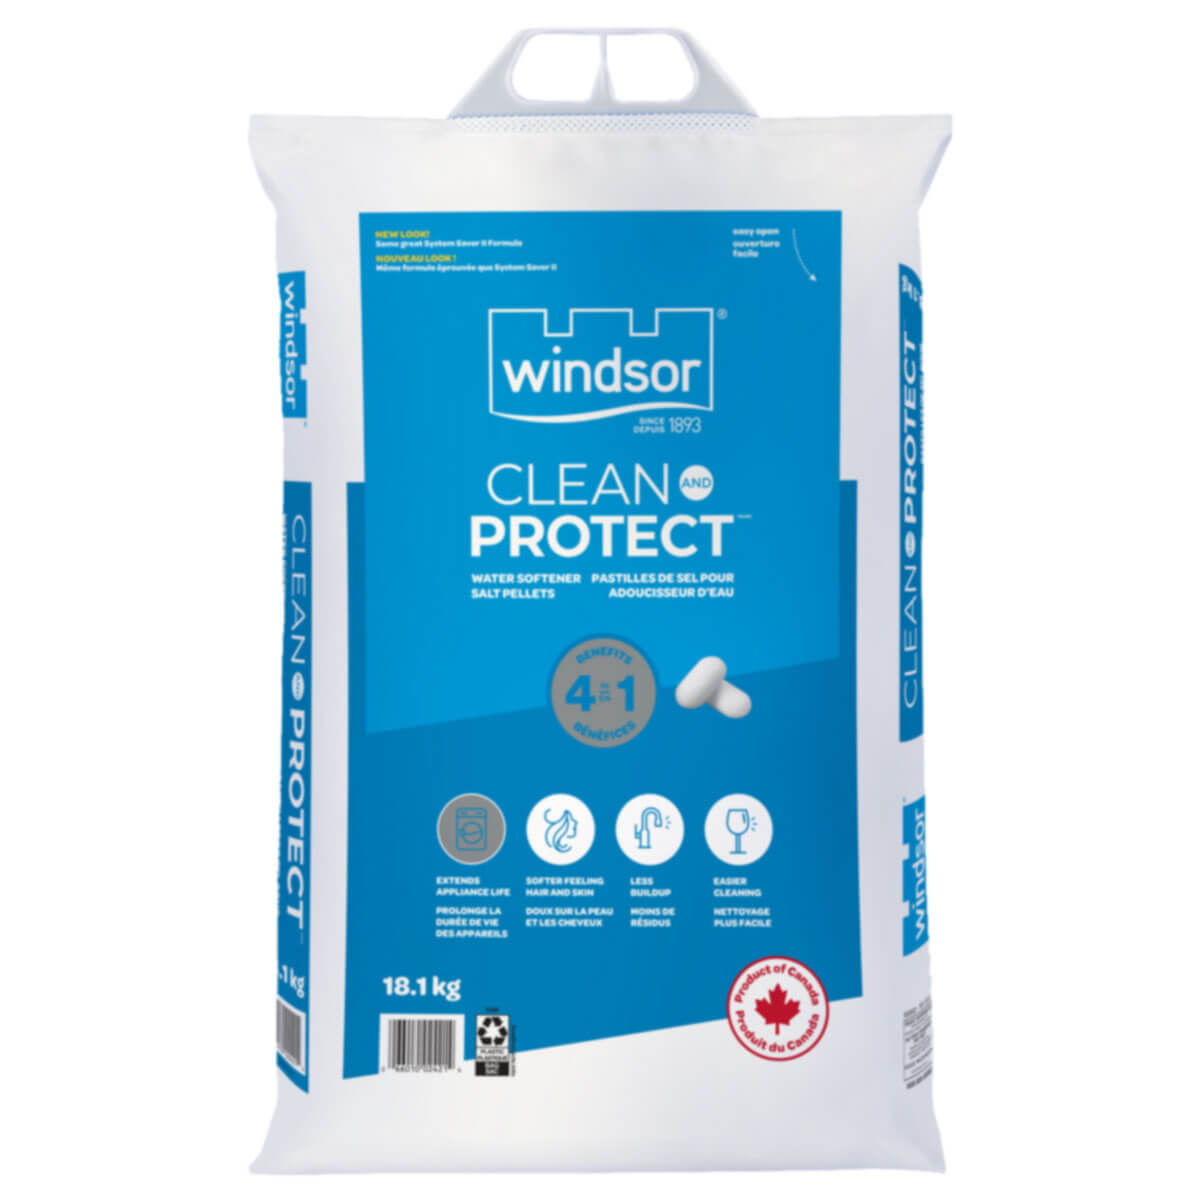 Windsor® Clean And Protect™ + Clean Care™ 4 in 1 Water Softener Salt - 18.1 kg